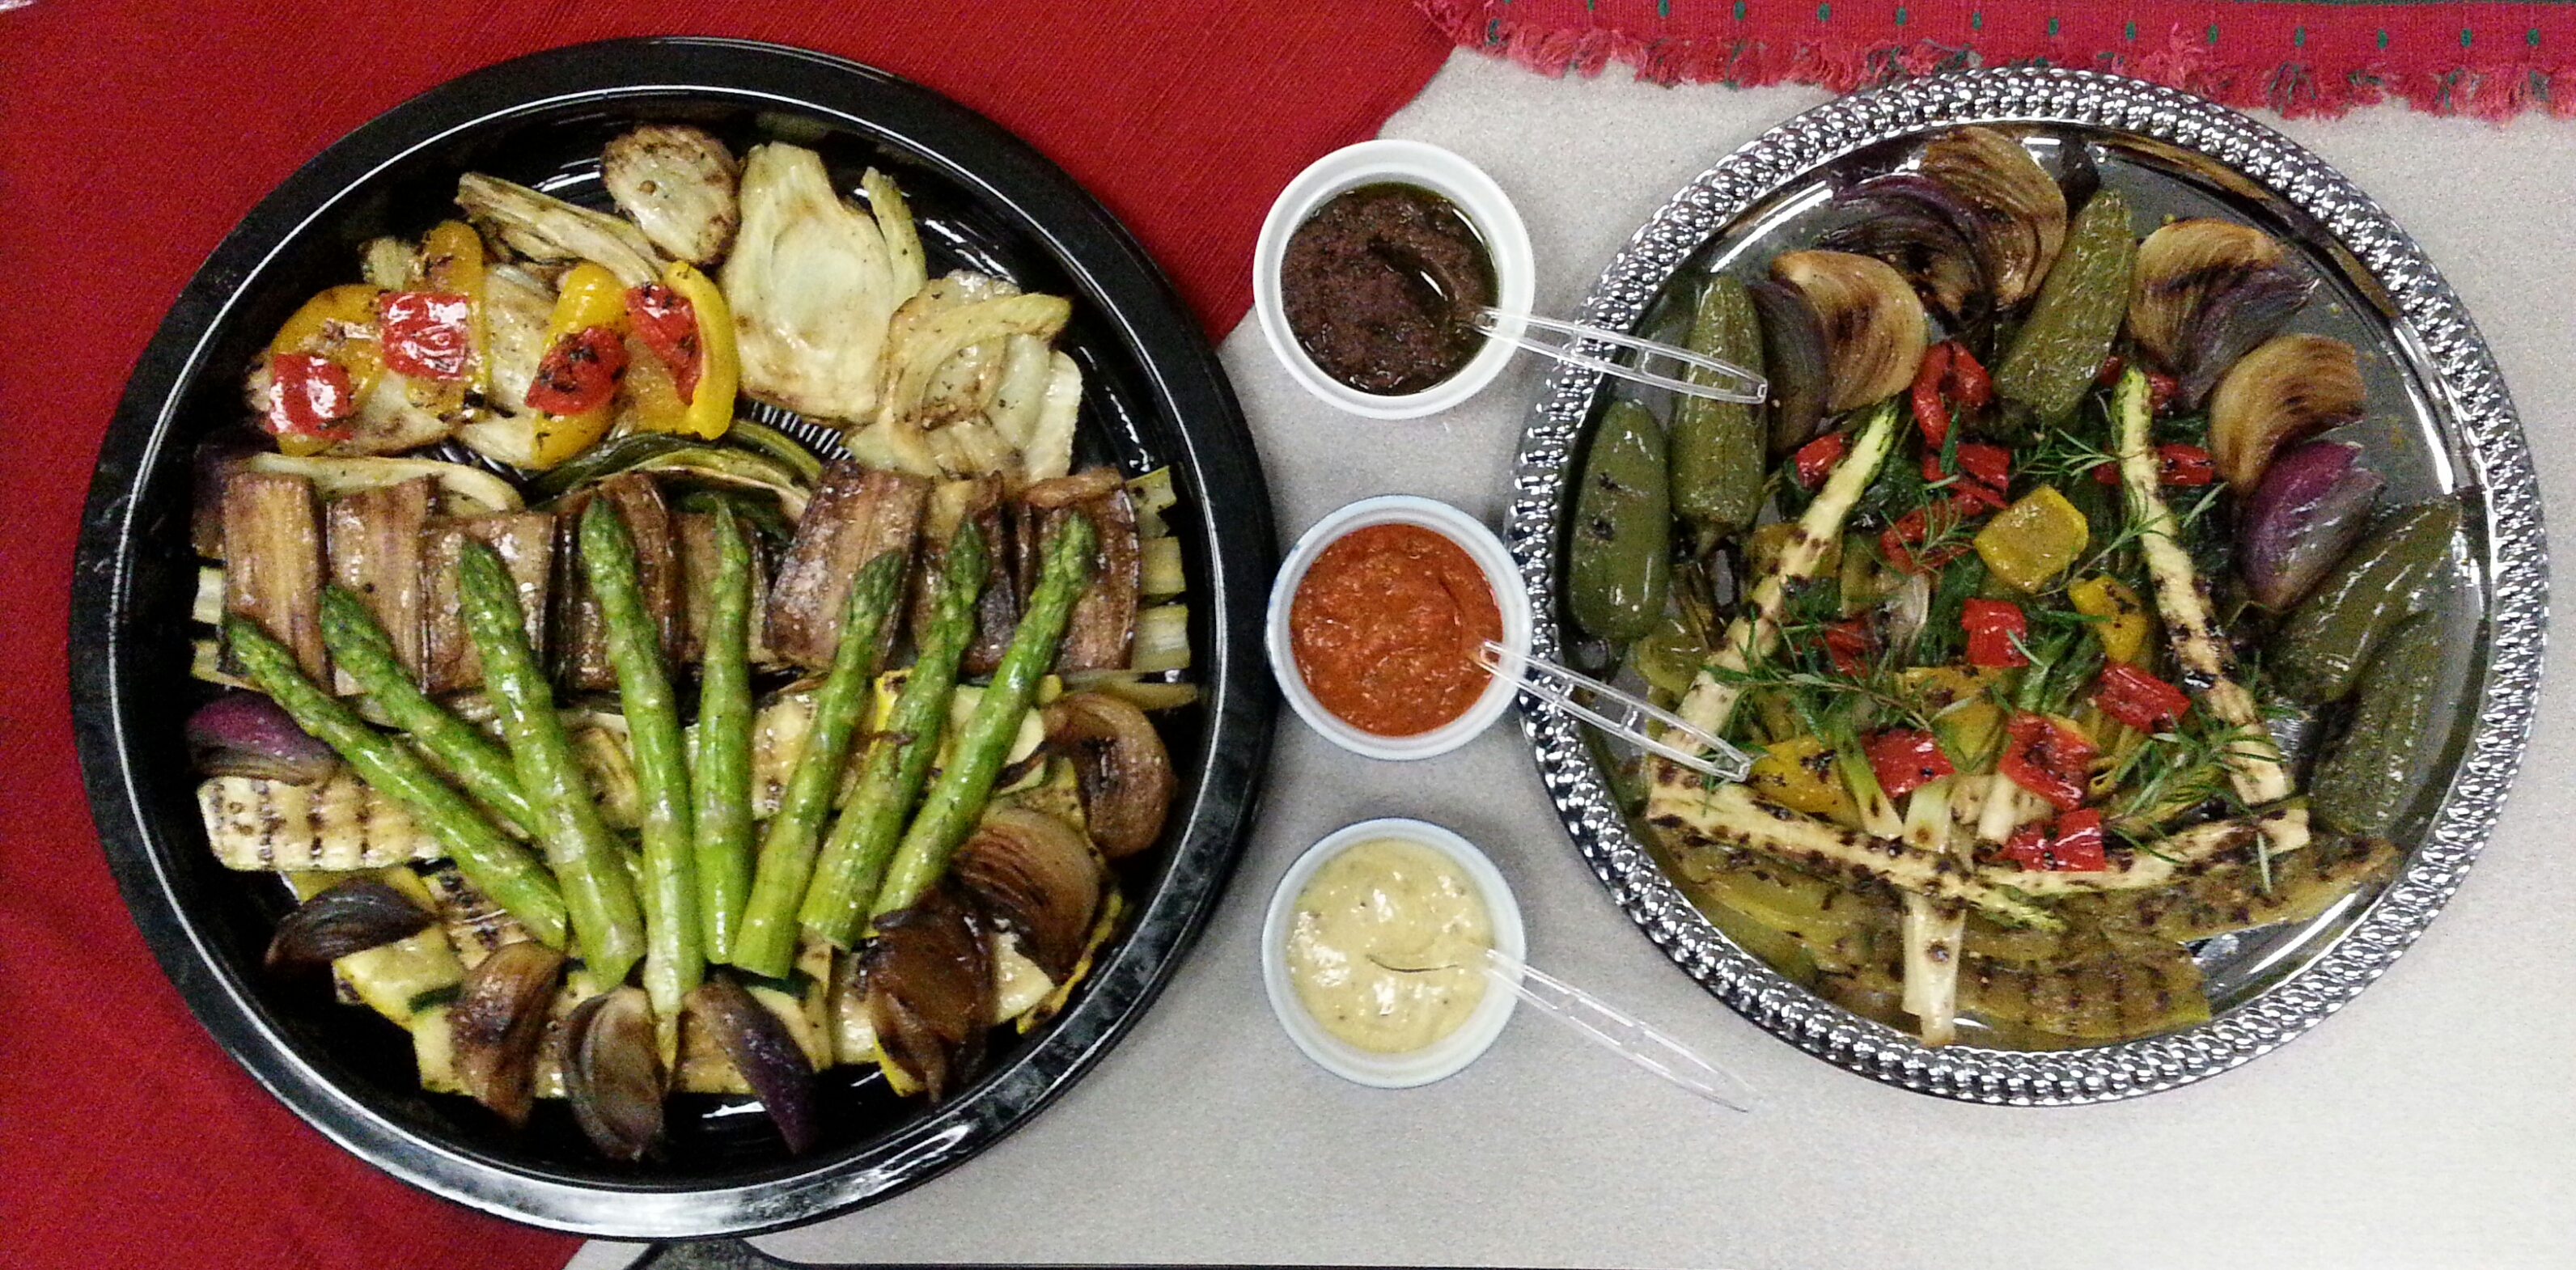 Grilled vegetable platters